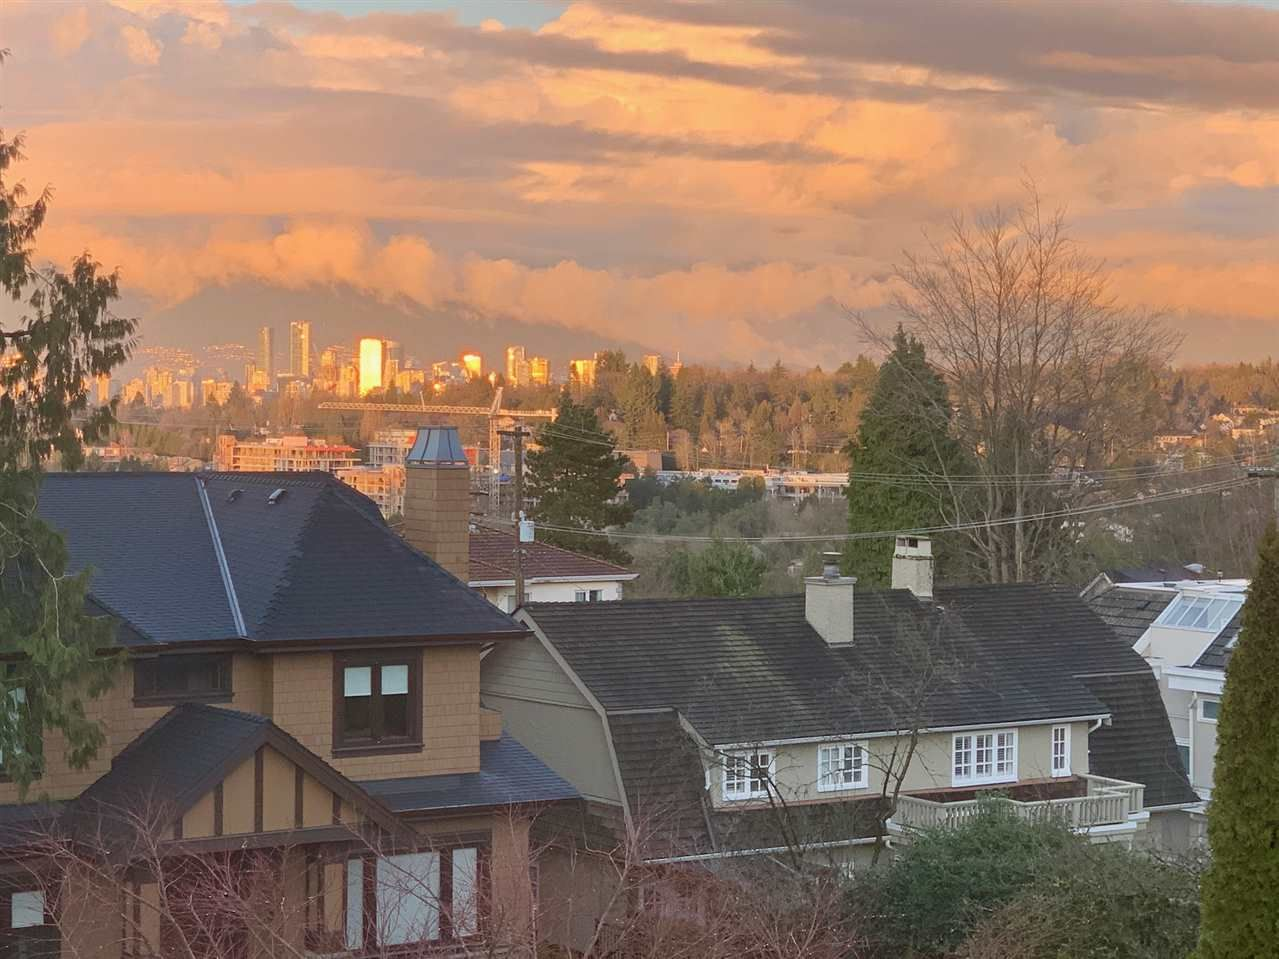 Main Photo: 2388 W 34 Avenue in Vancouver: Quilchena House for sale (Vancouver West)  : MLS®# R2431261